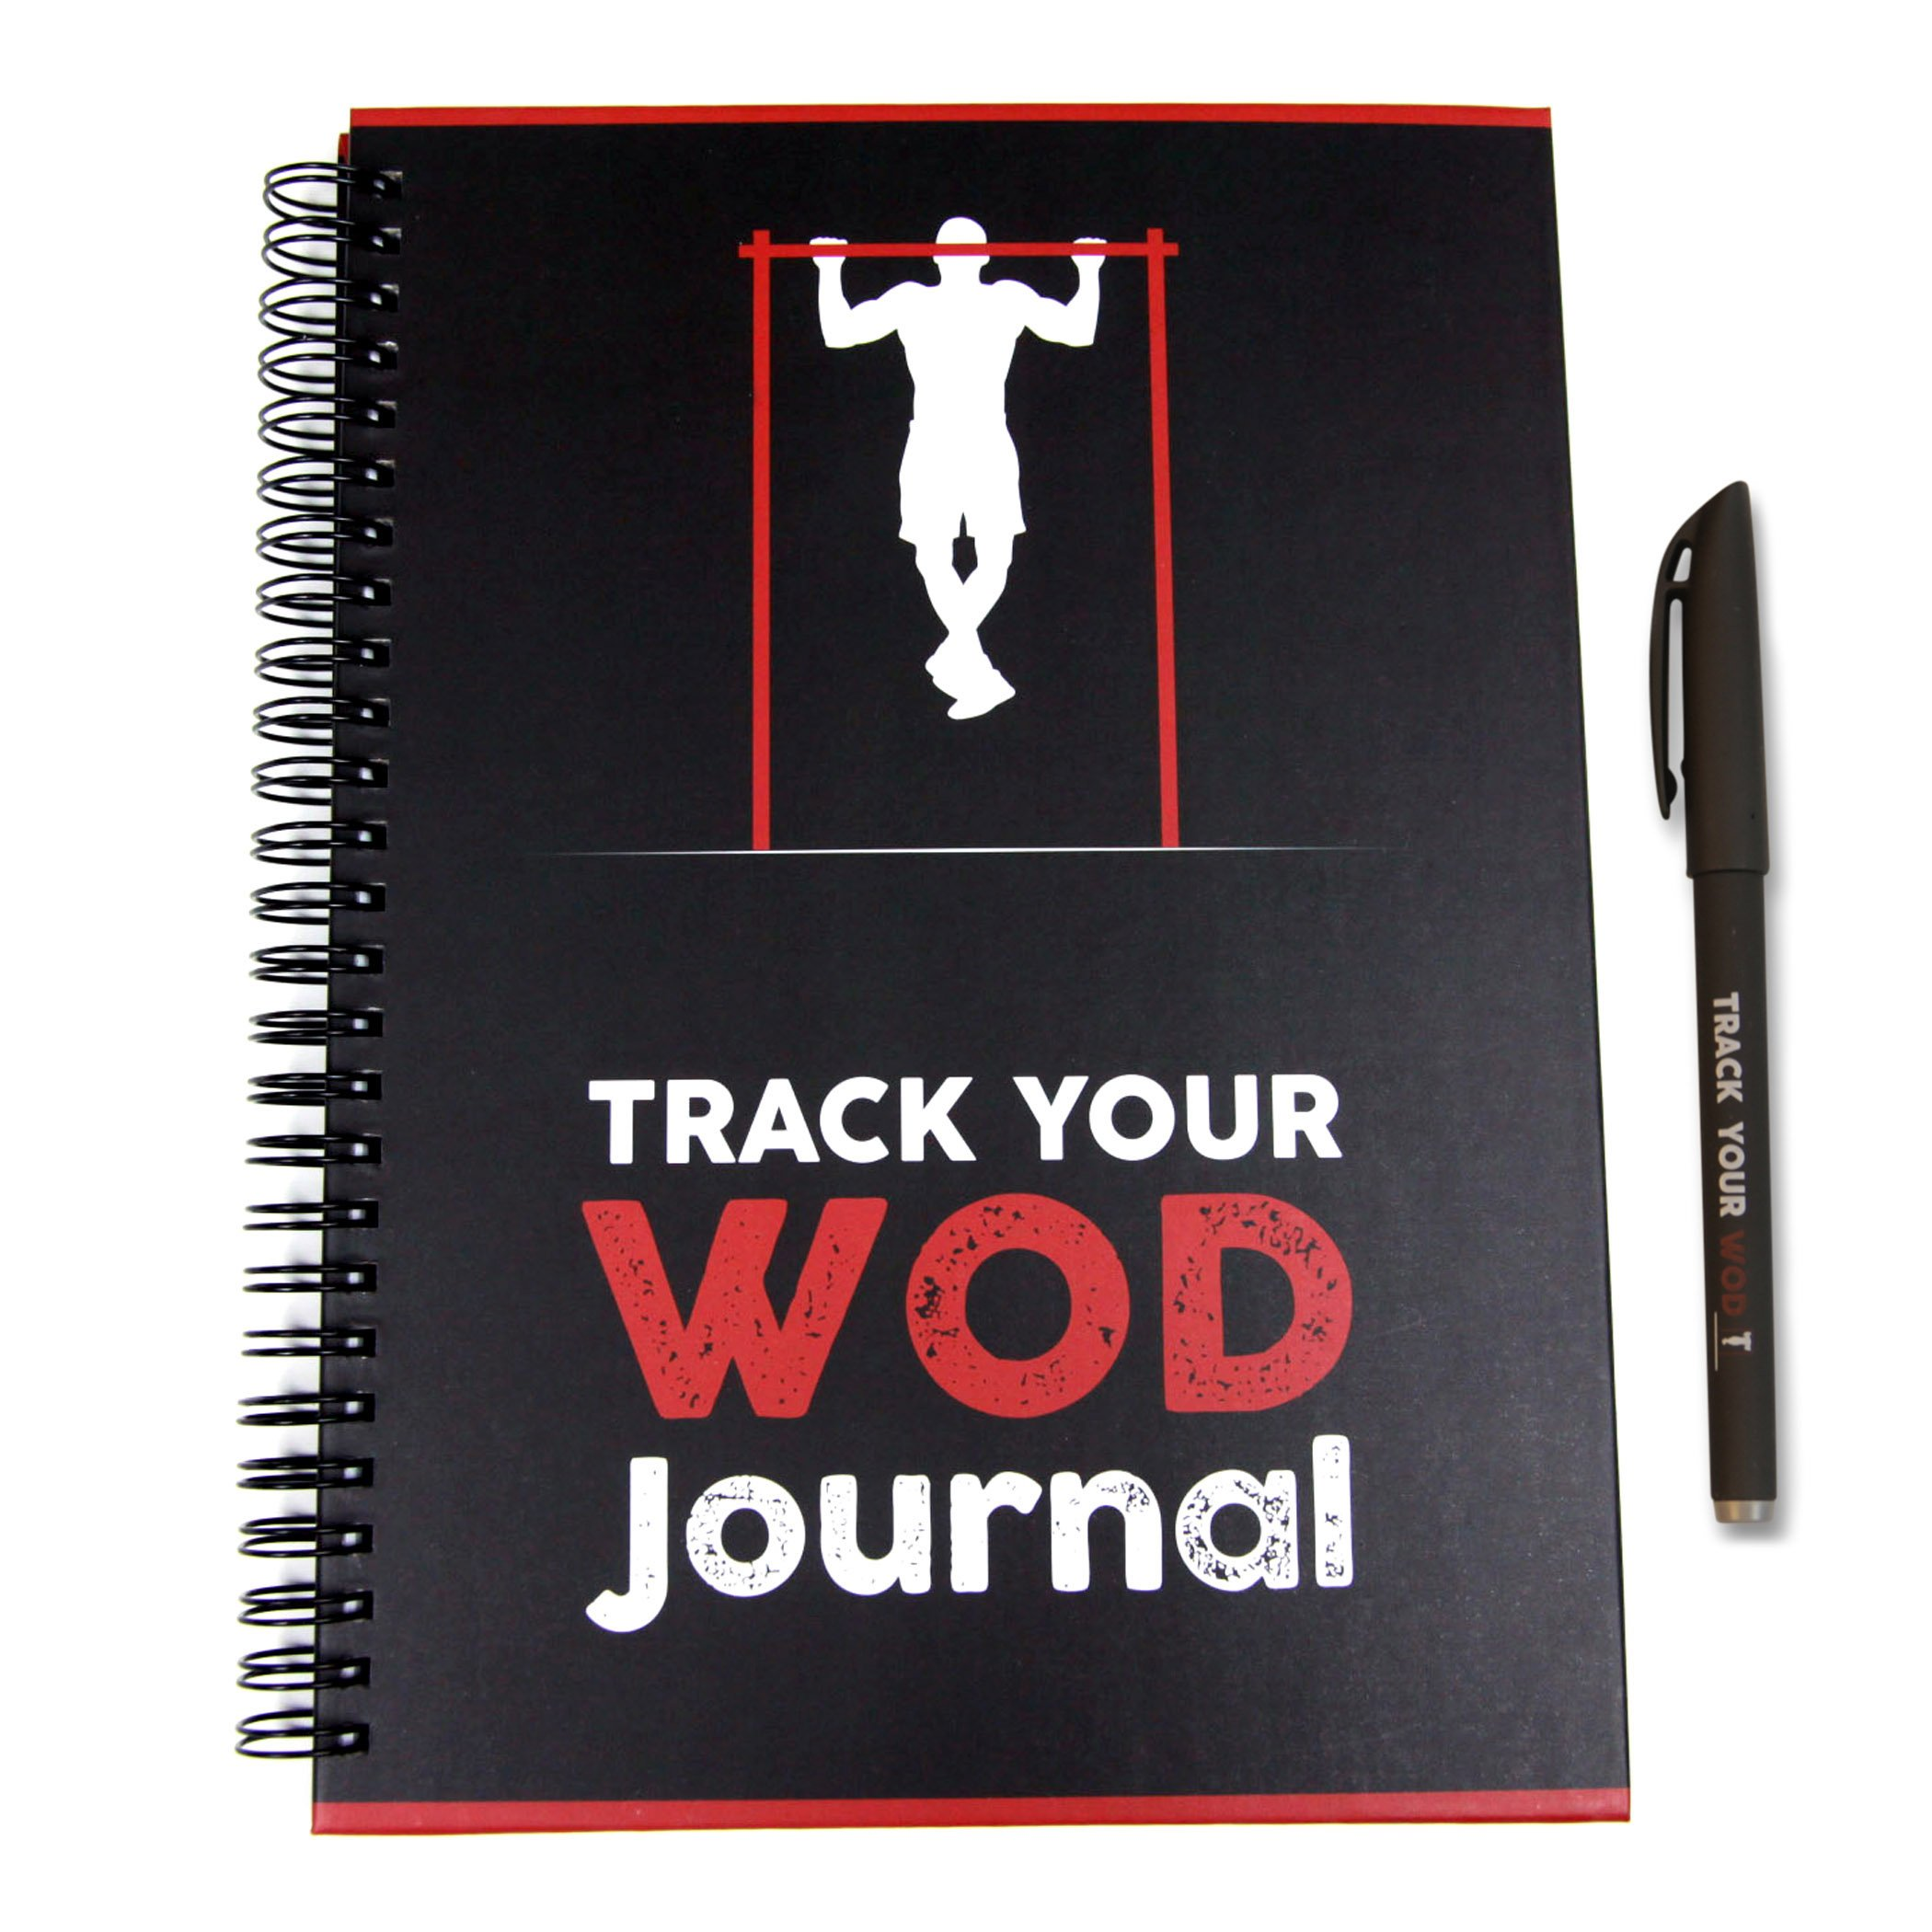 Track Your WOD Journal - The Ultimate Cross Training Tracking Journal. 3rd ed. 6x9 Hardcover w/ pen included. Track 210 WODs, 9 benchmarks + 25 Girls + 25 Hero WODs, and all your Personal Records. by TYWOD